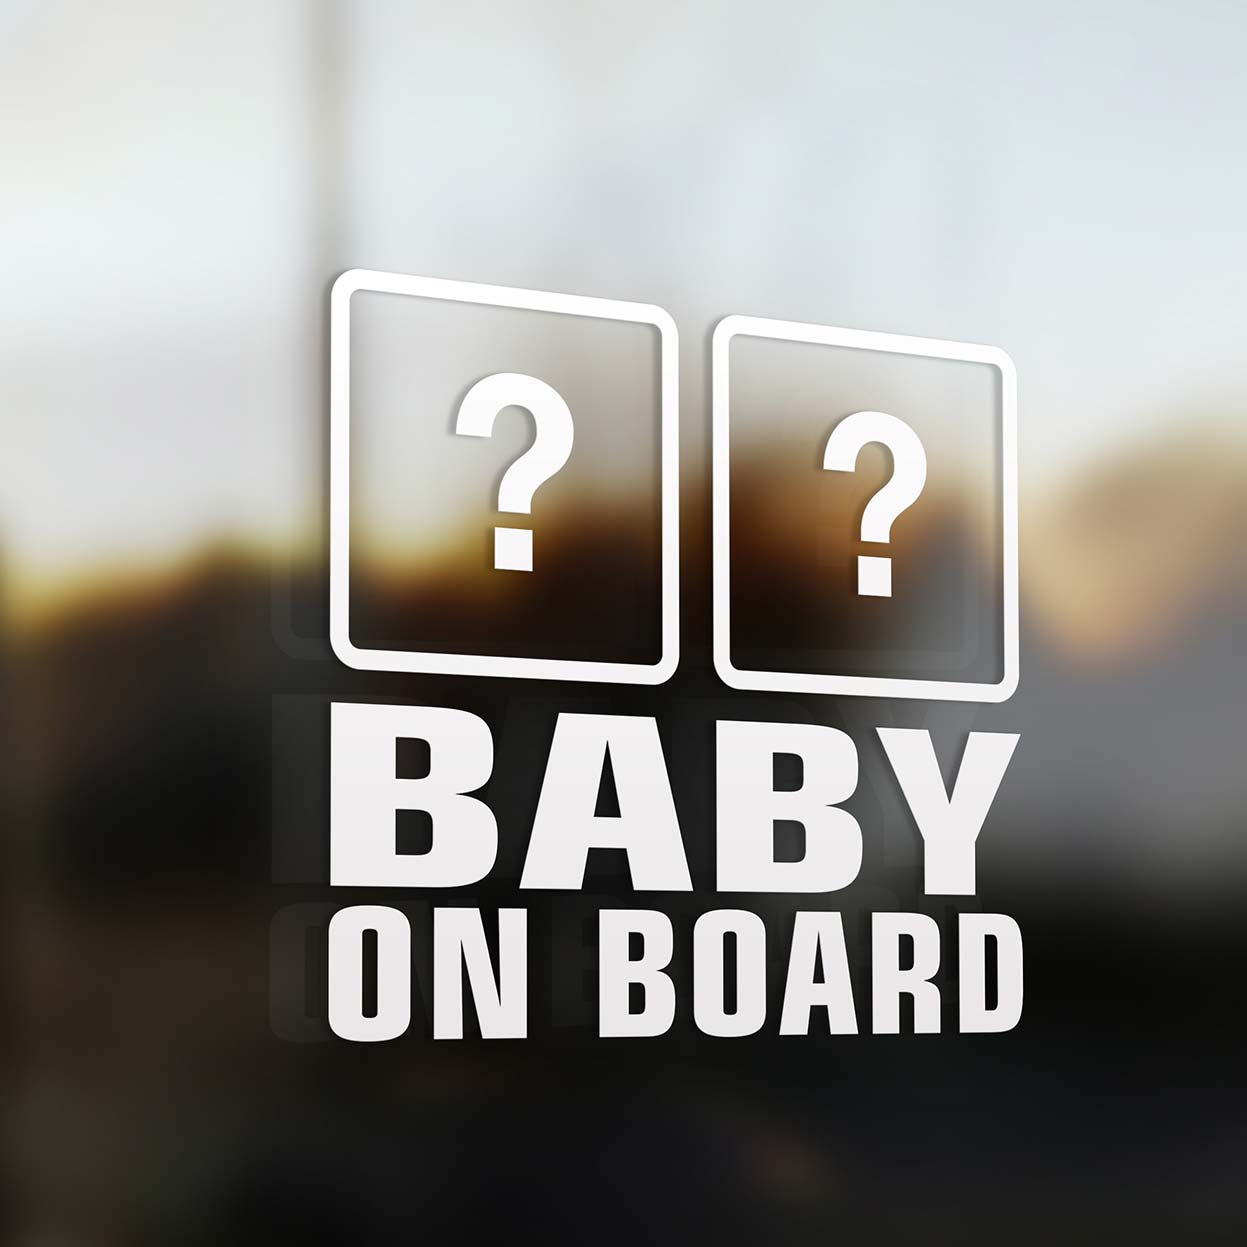 Car stickers design your own - Double Baby On Board Car Sticker